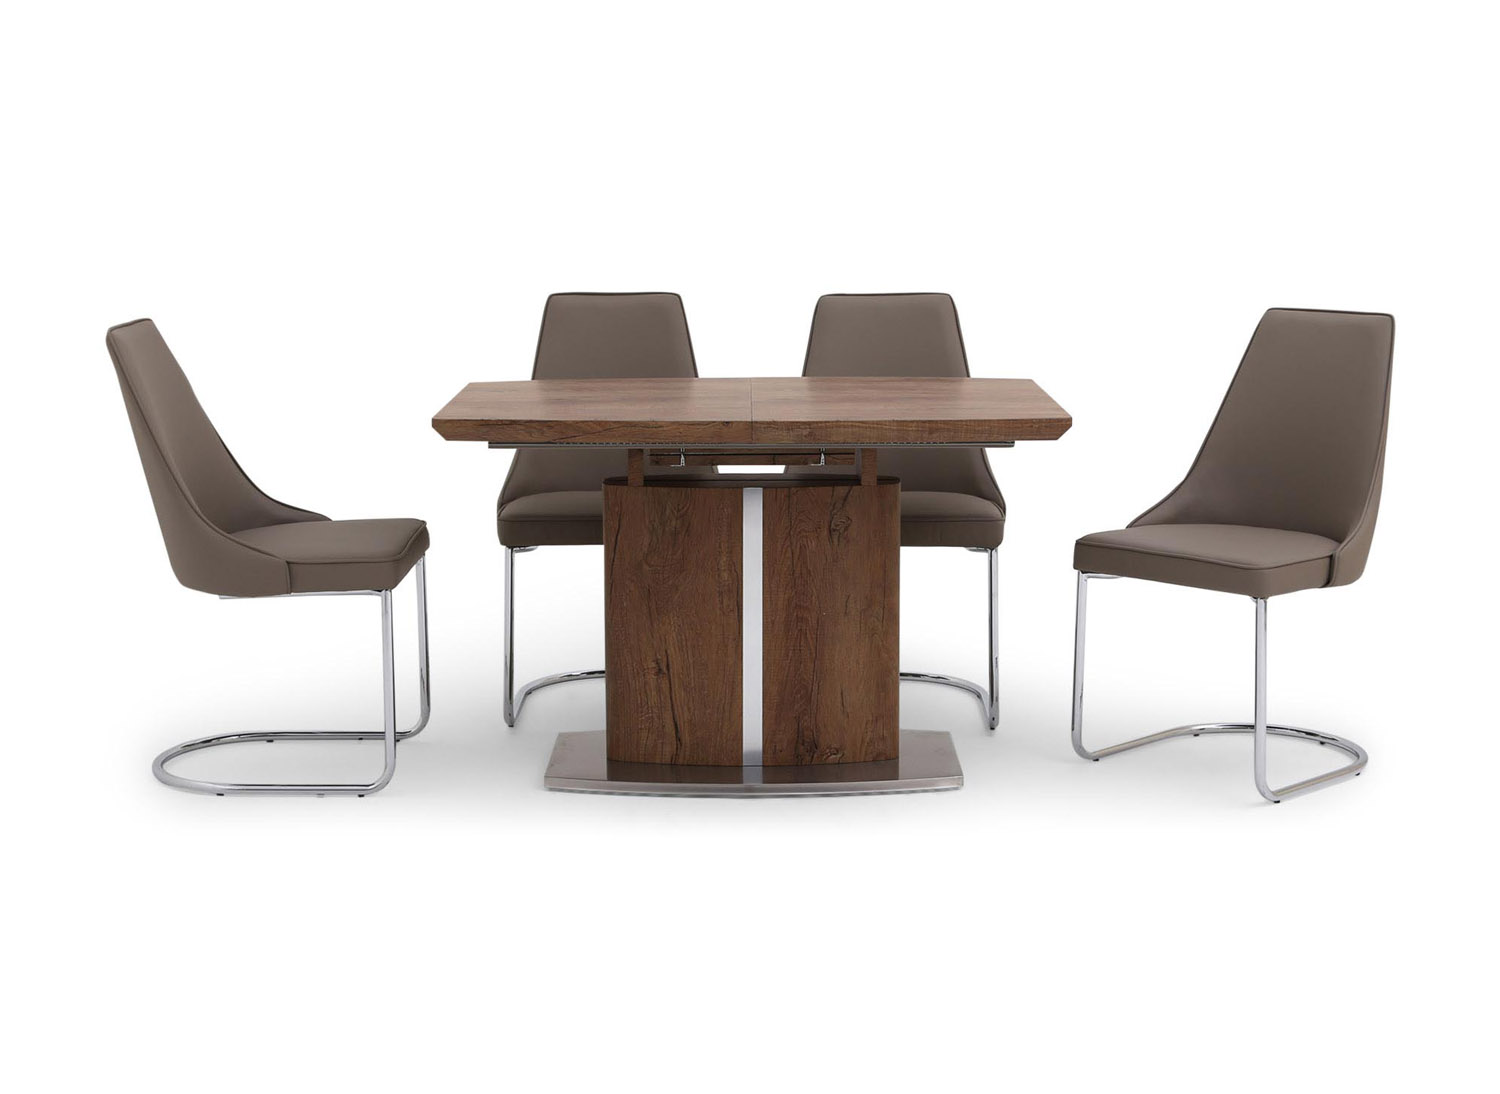 Fairmont Thiago Ext Walnut Dining Table + 4 Mya Taupe Chairs